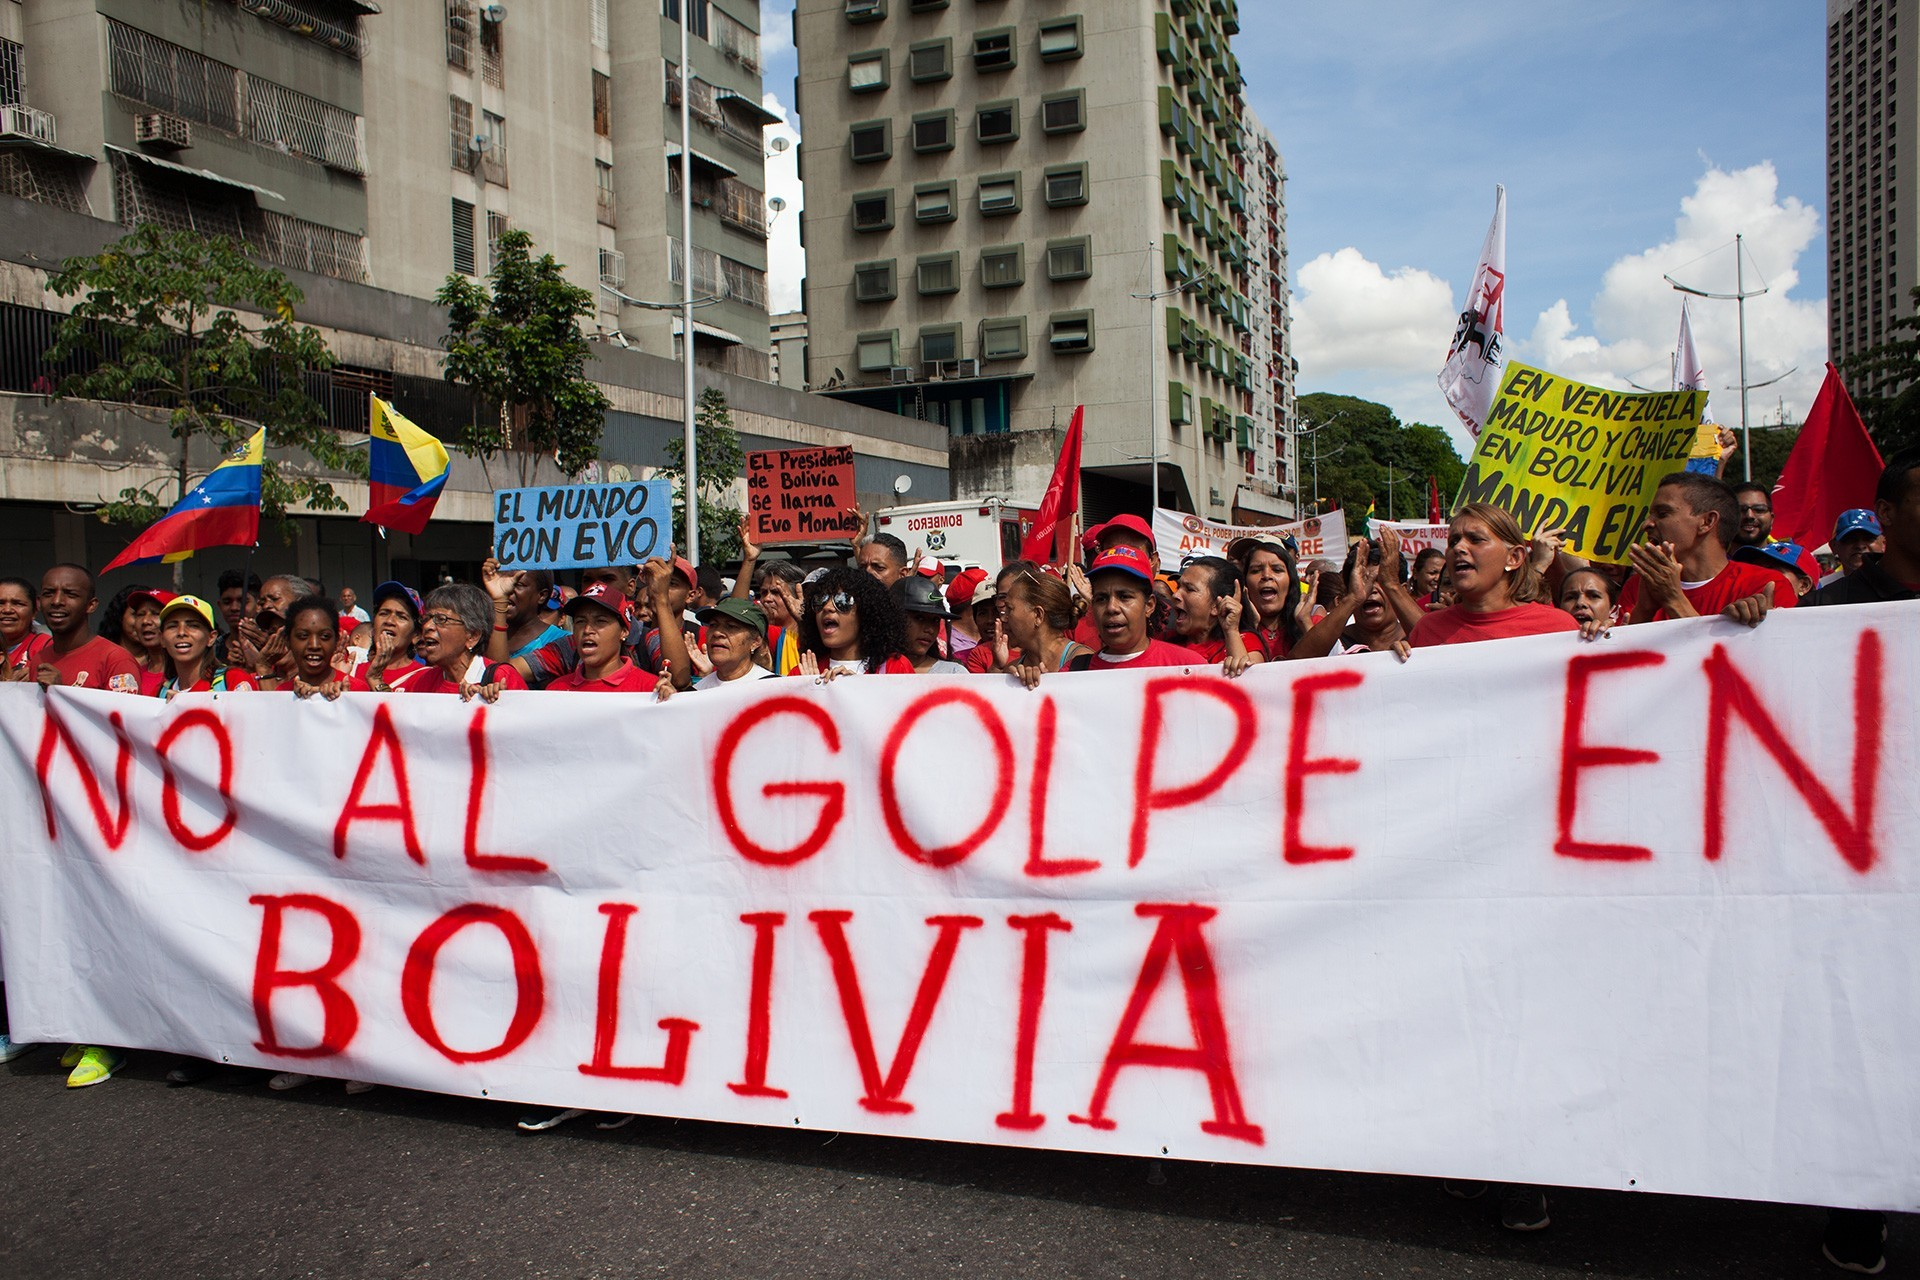 Venezuelans protesting the coup in Bolivia.